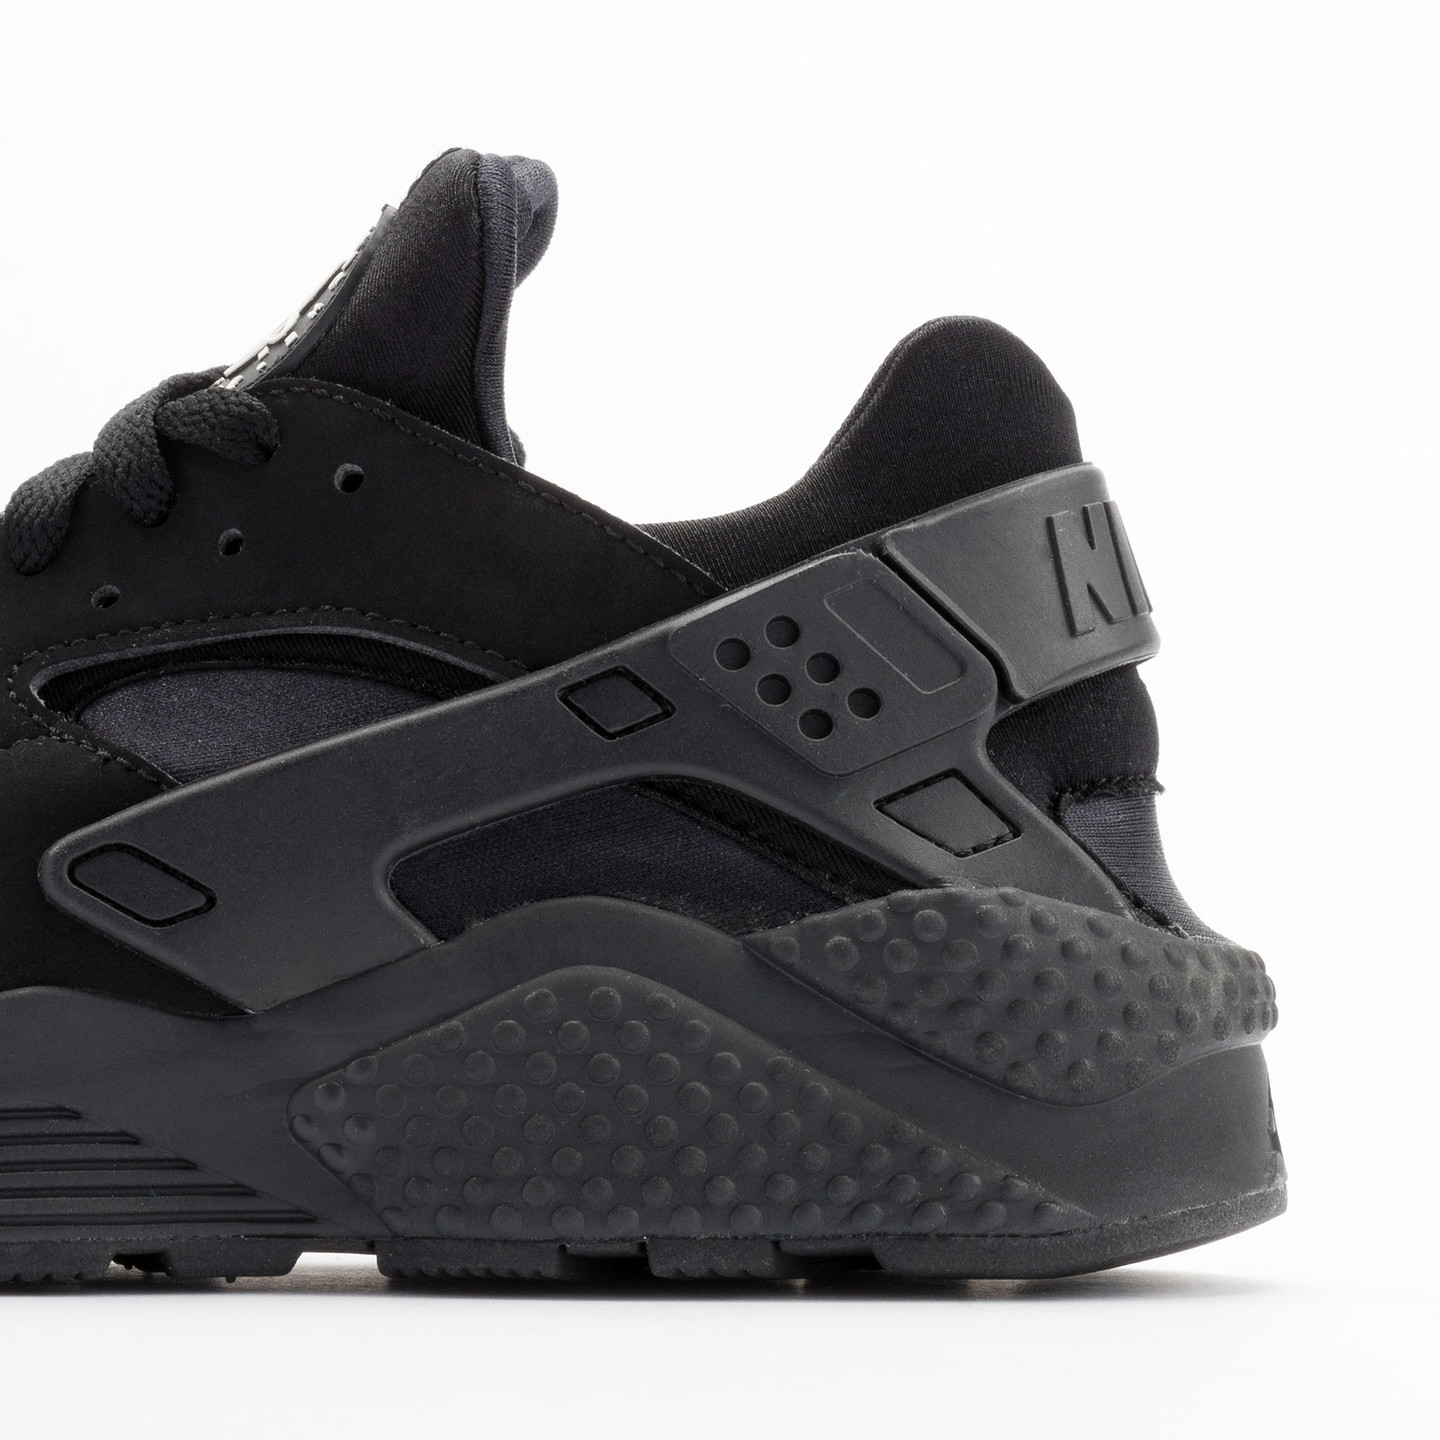 Nike Air Huarache Black/Black-White 318429-003-47.5